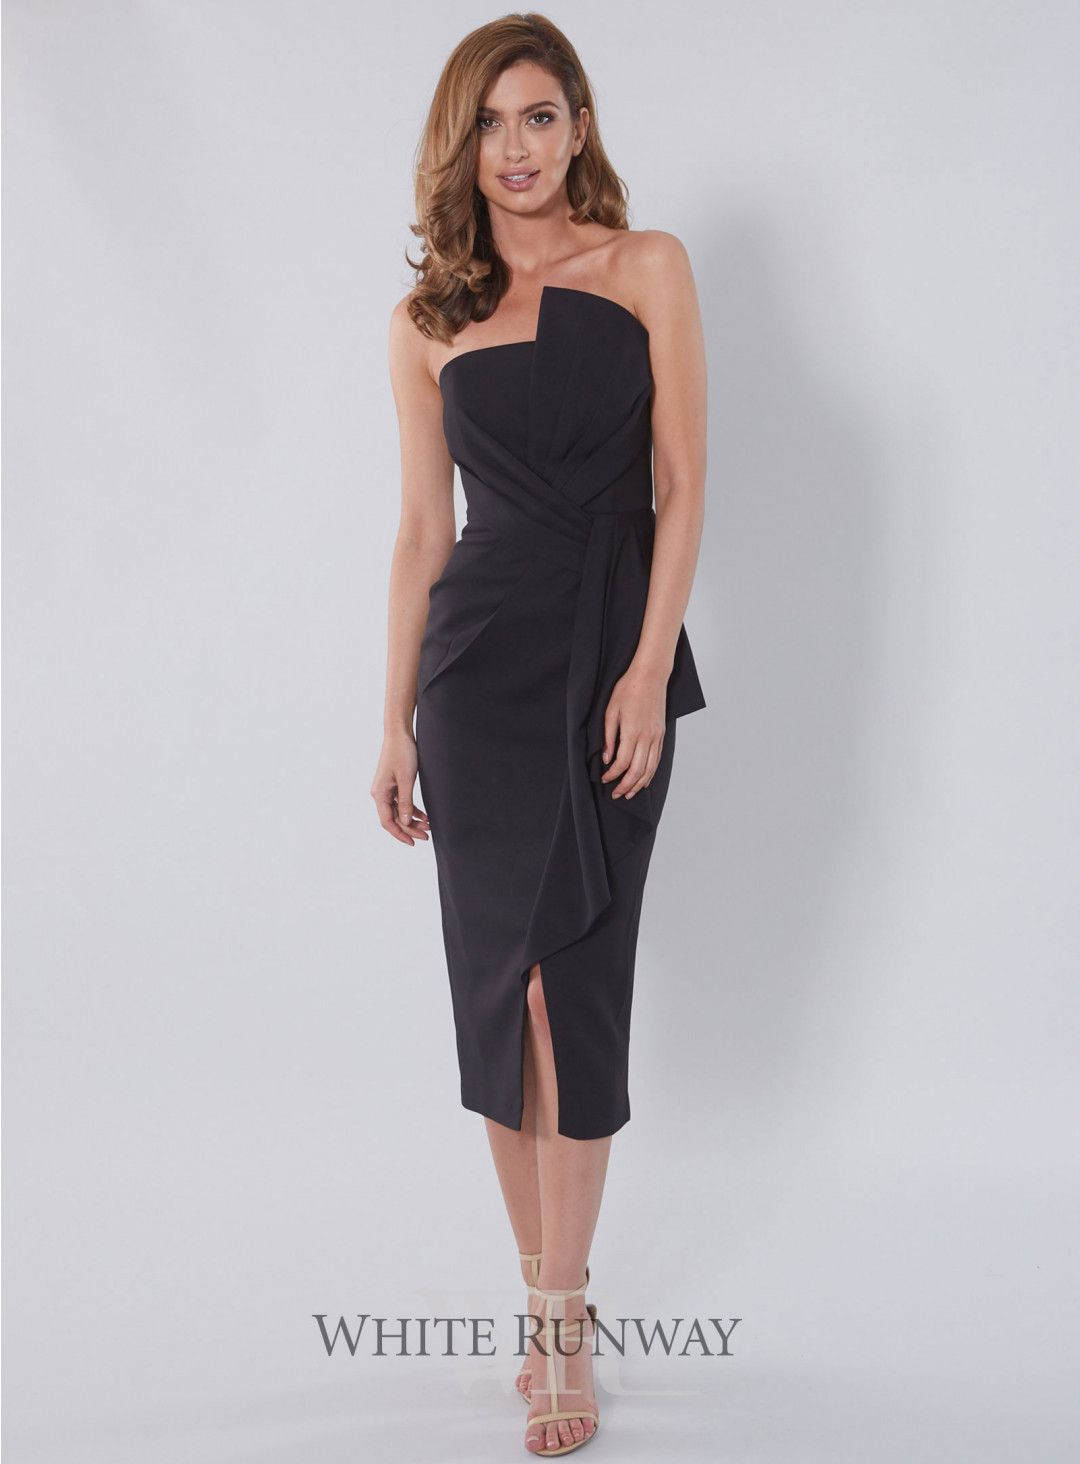 1481842f6d Stellina Midi Dress. A gorgeous cocktail length dress by Australian  designer Samantha Rose. A strapless style featuring 3D ruffle on the  neckline and waist.